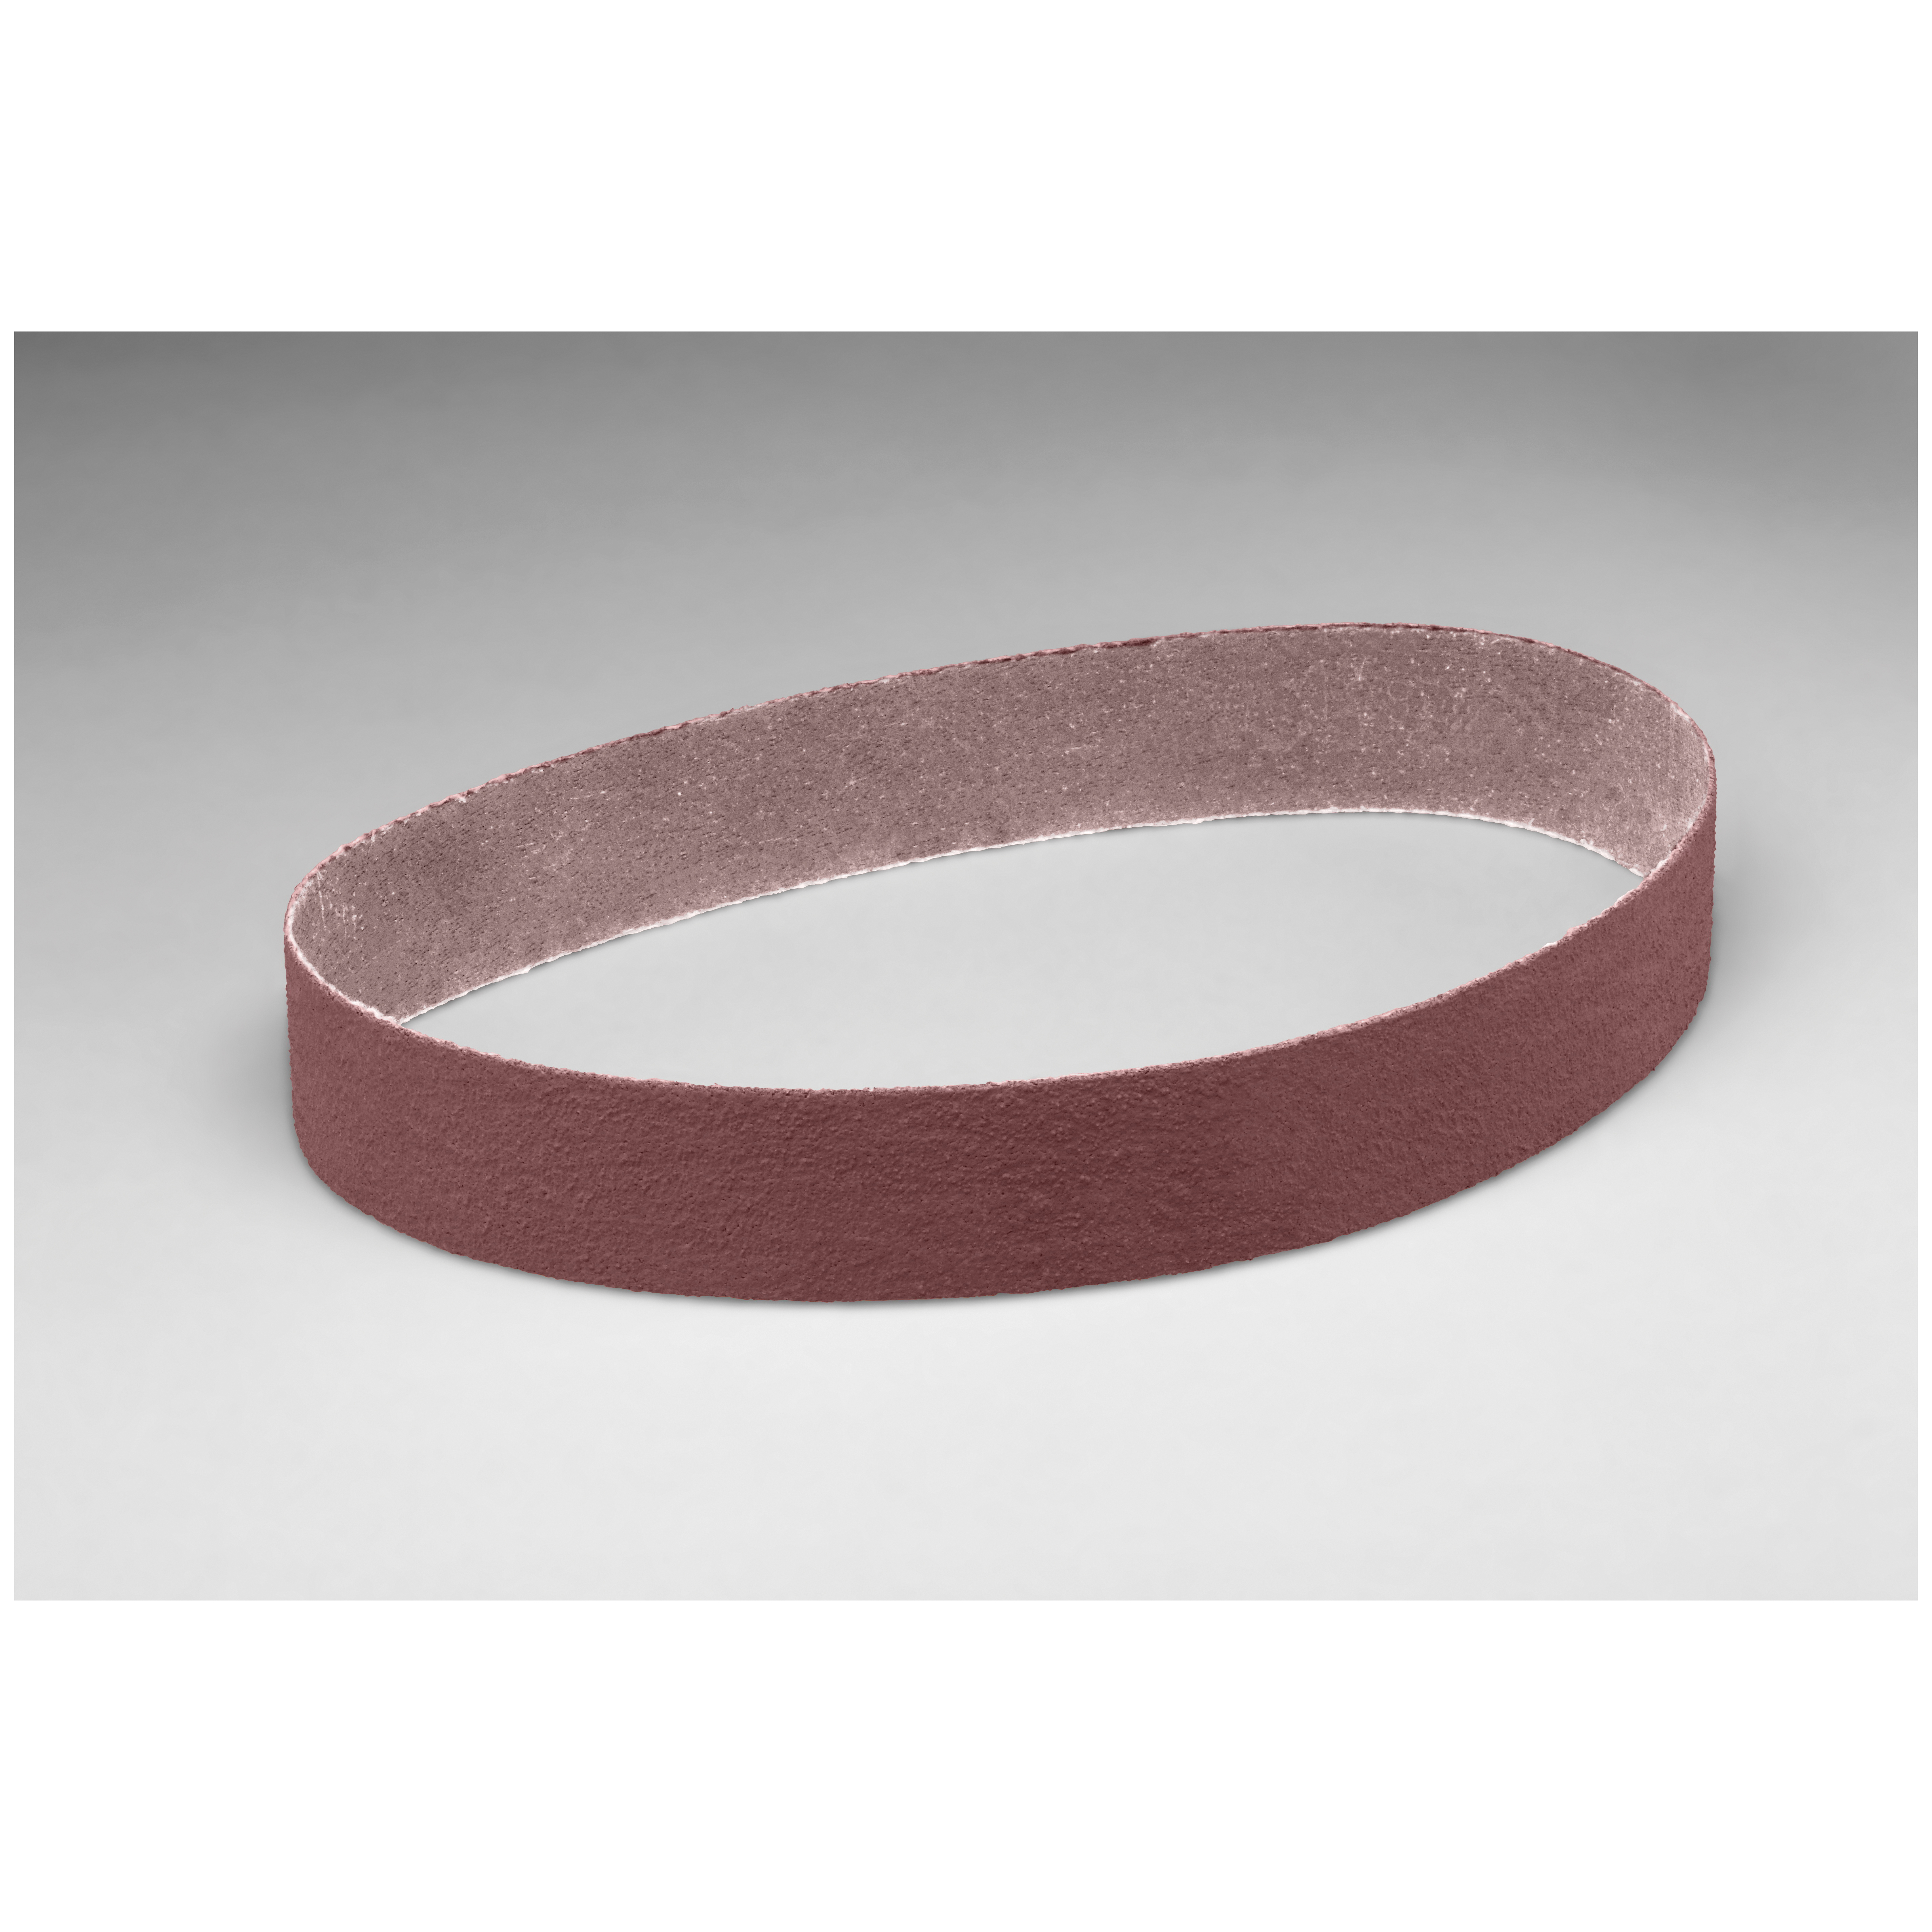 3M™ 051144-26424 Narrow Coated Abrasive Belt, 2 in W x 60 in L, 50 Grit, Coarse Grade, Aluminum Oxide Abrasive, Cloth Backing